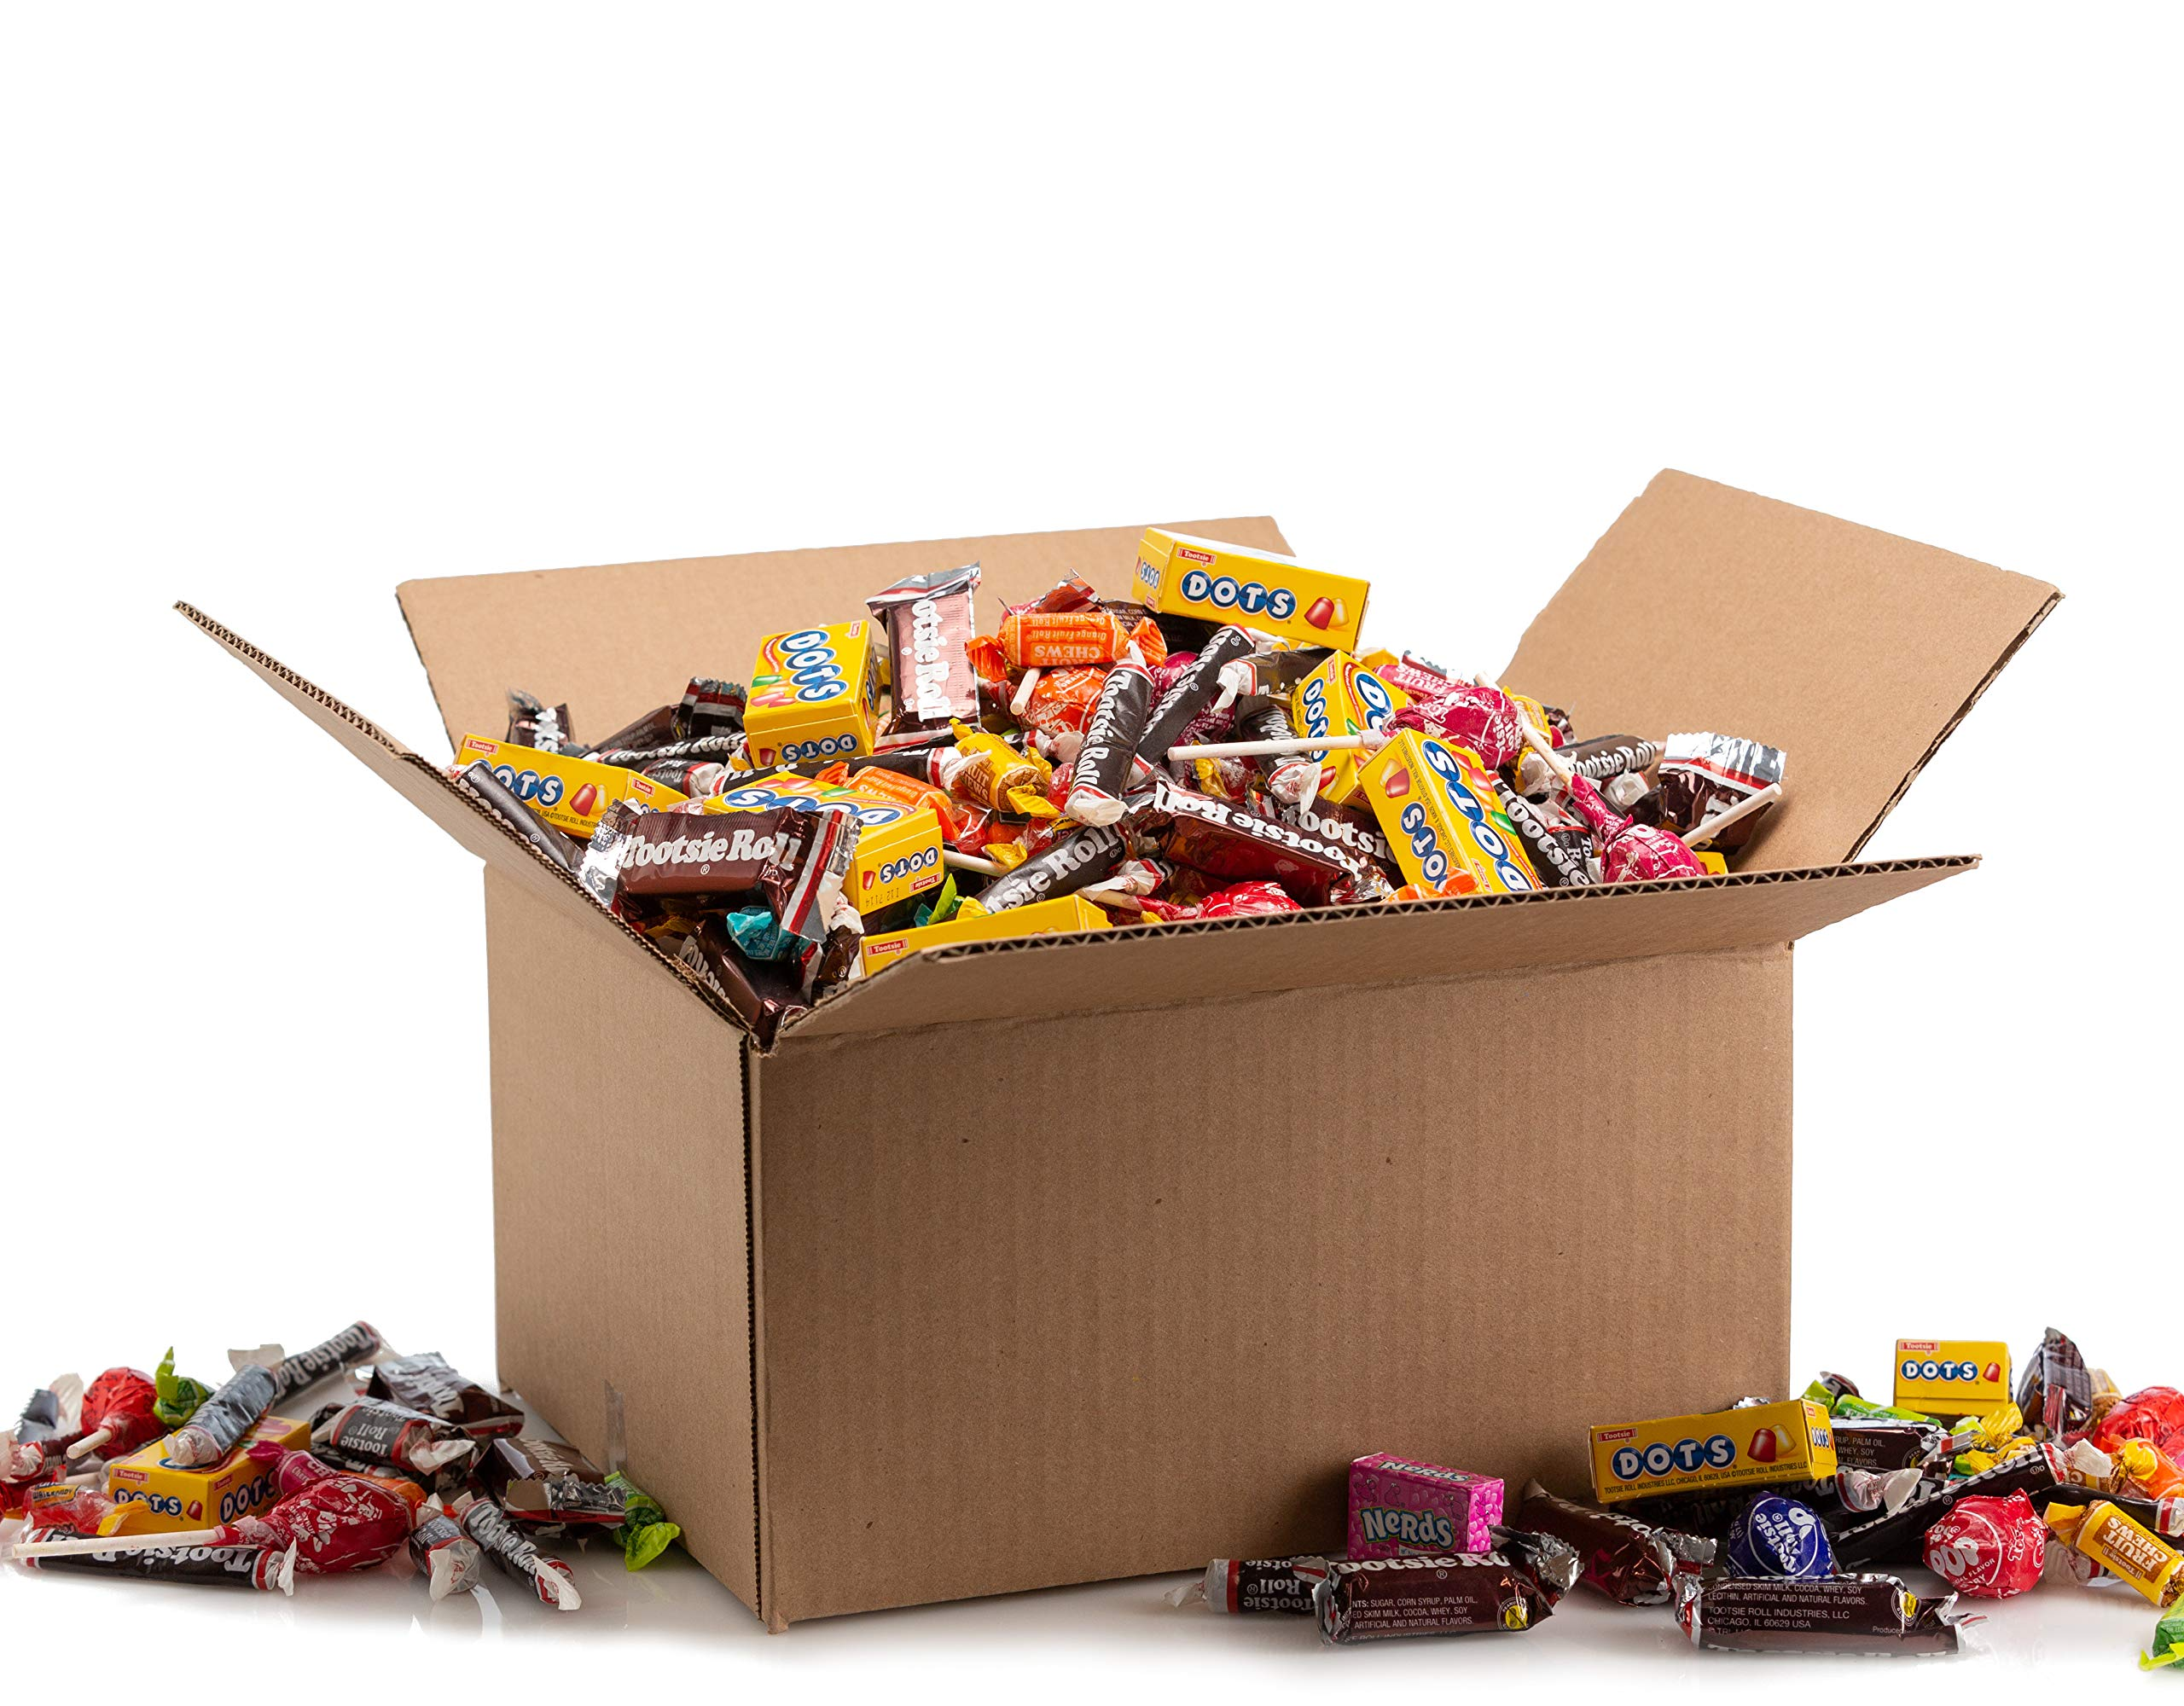 Assorted Bulk Candy, Individually Wrapped: 12 LB Box Variety Pack with Tootsie Rolls, Tootsie Pops, Jolly Ranchers, Nerds, Assorted Laffy Taffy's & More! Great for Holiday and Party Treats by Betalicious